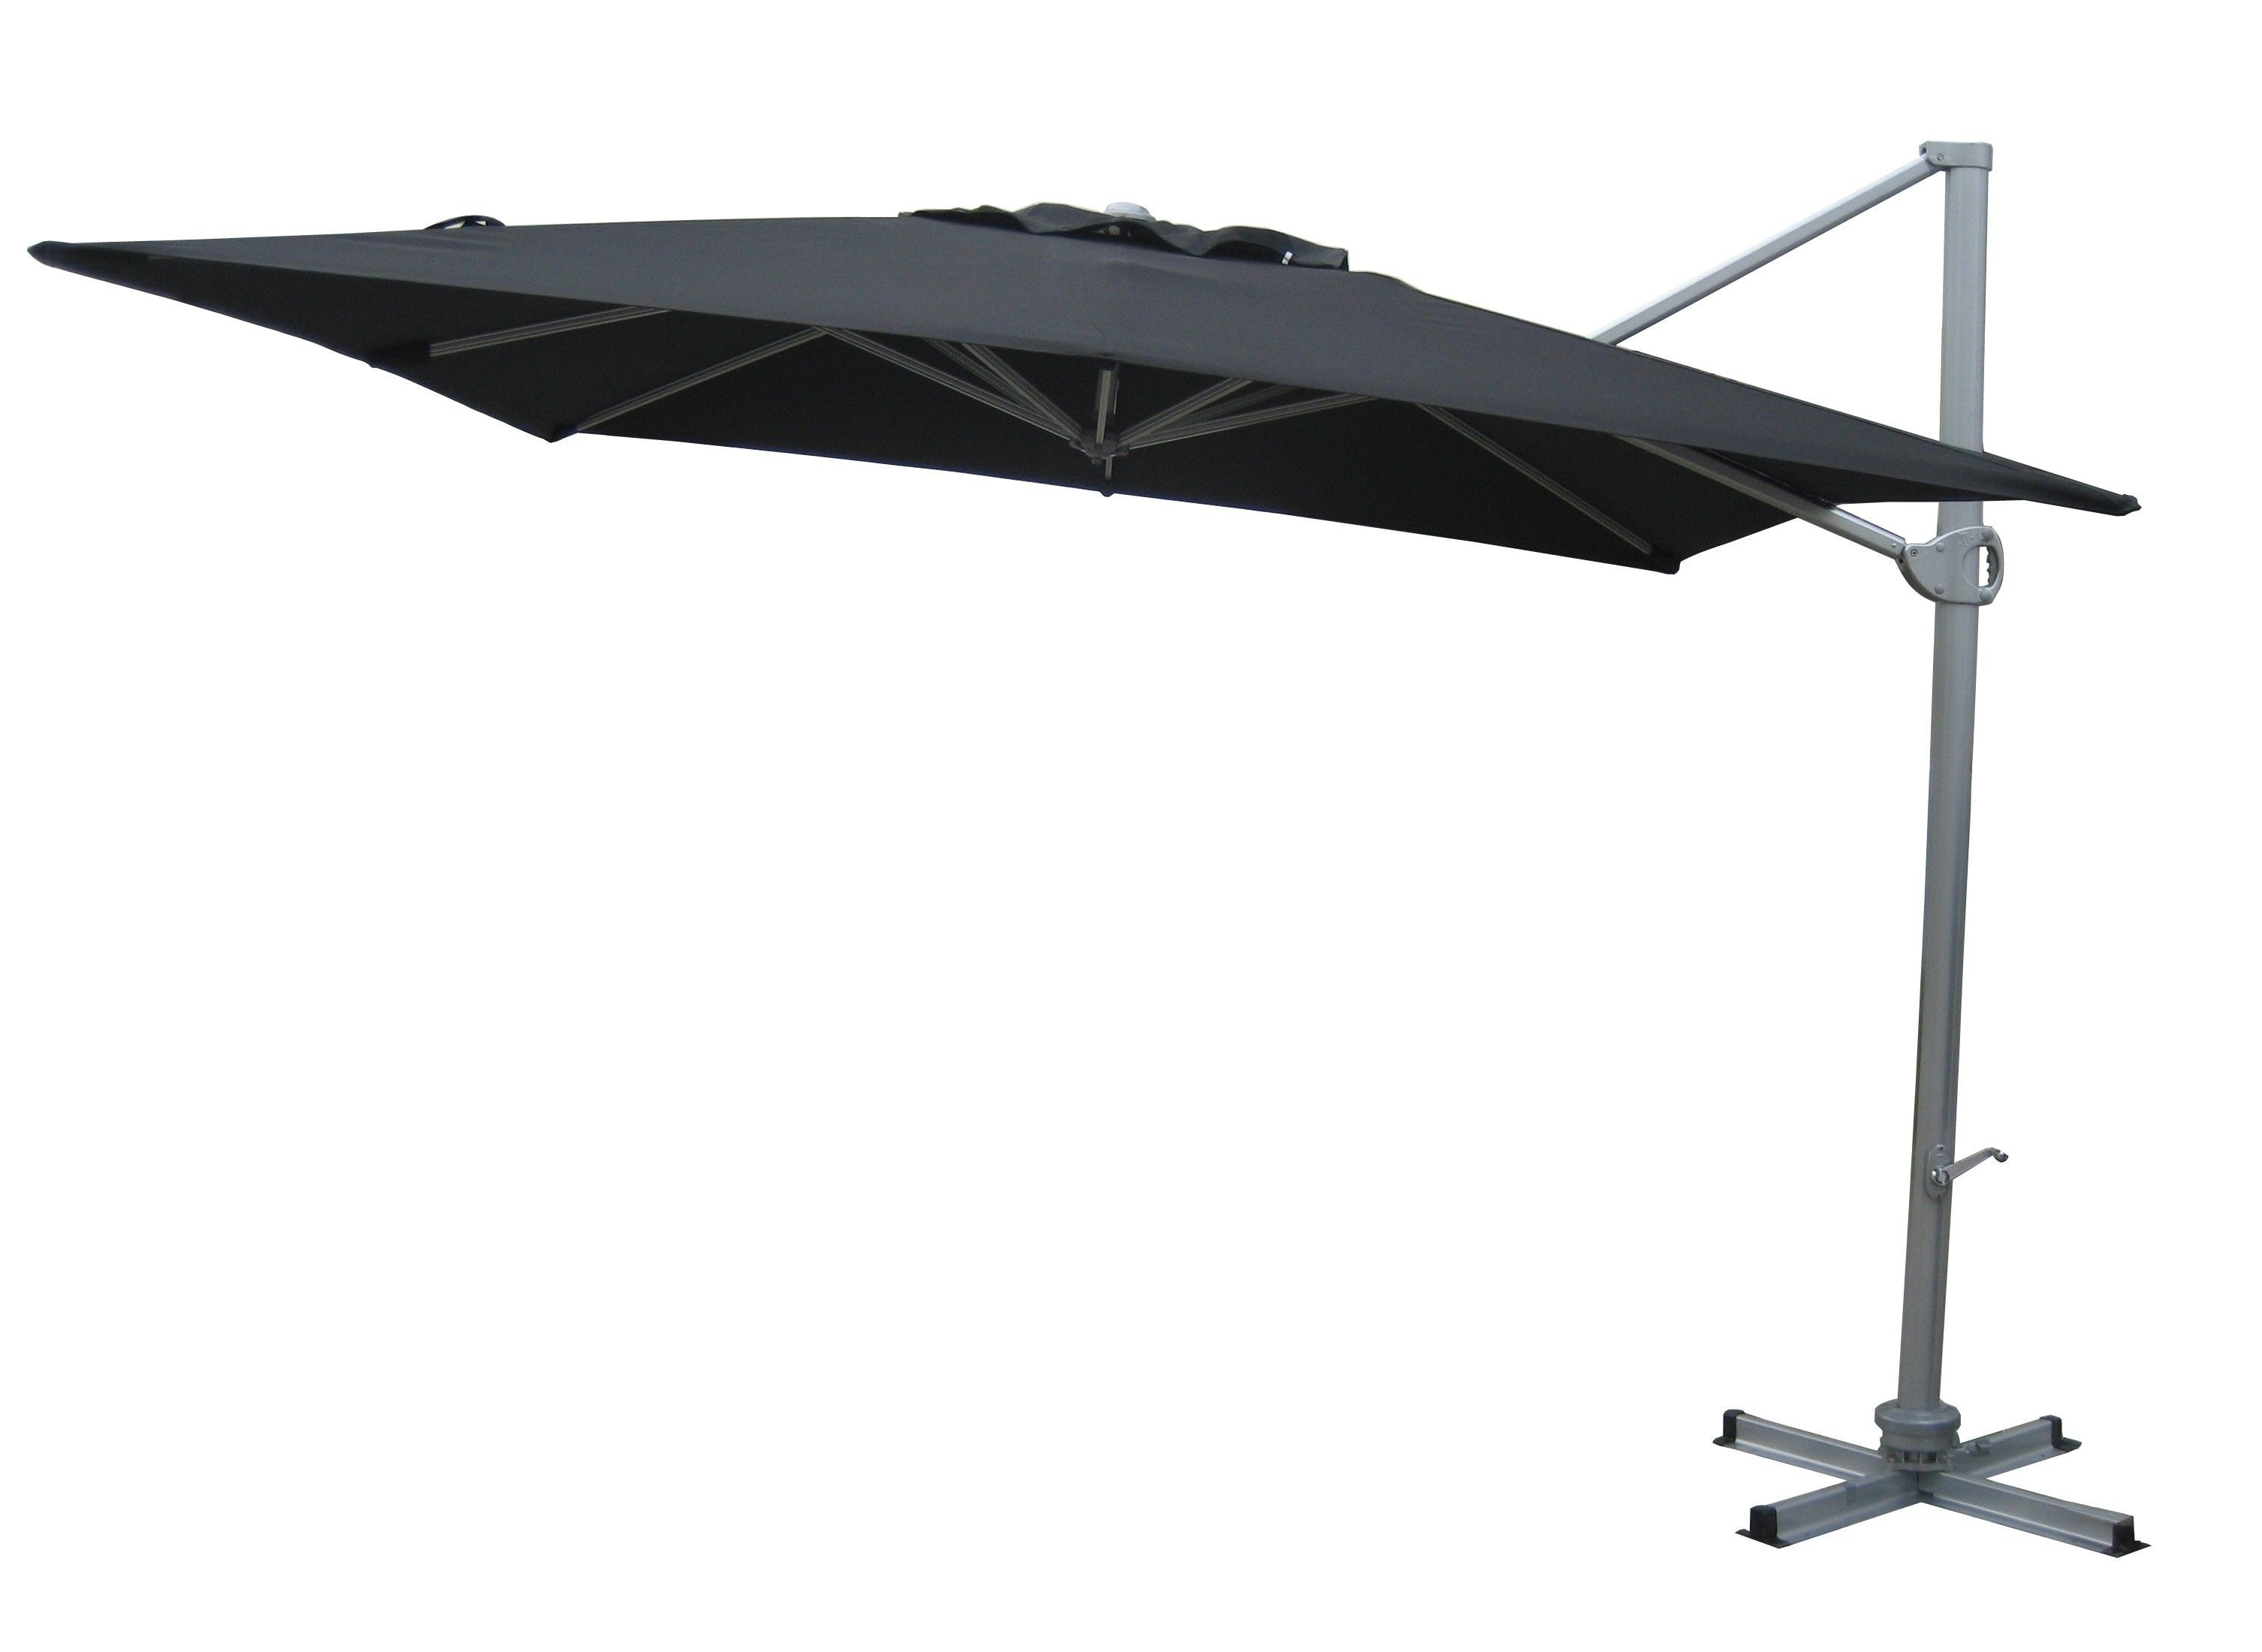 Black Patio Umbrellas In Most Popular Best Cantilever Patio Umbrella Luxury Cantilever Patio Umbrellas (View 19 of 20)